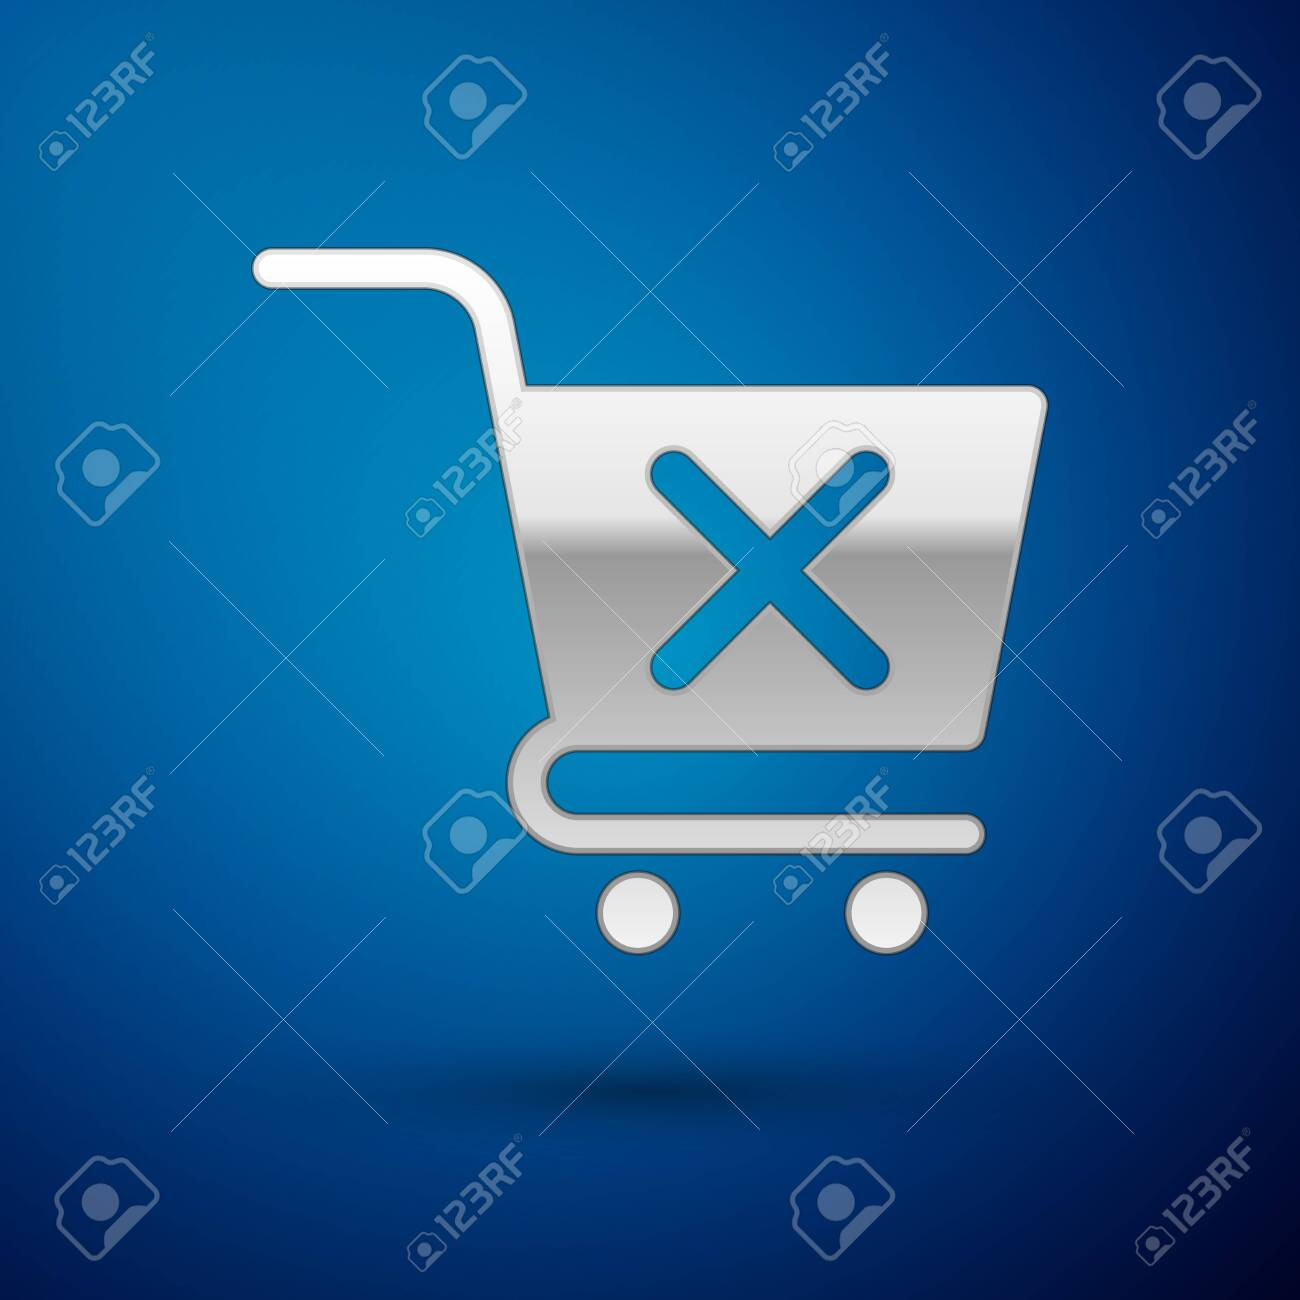 Silver Remove shopping cart icon isolated on blue background